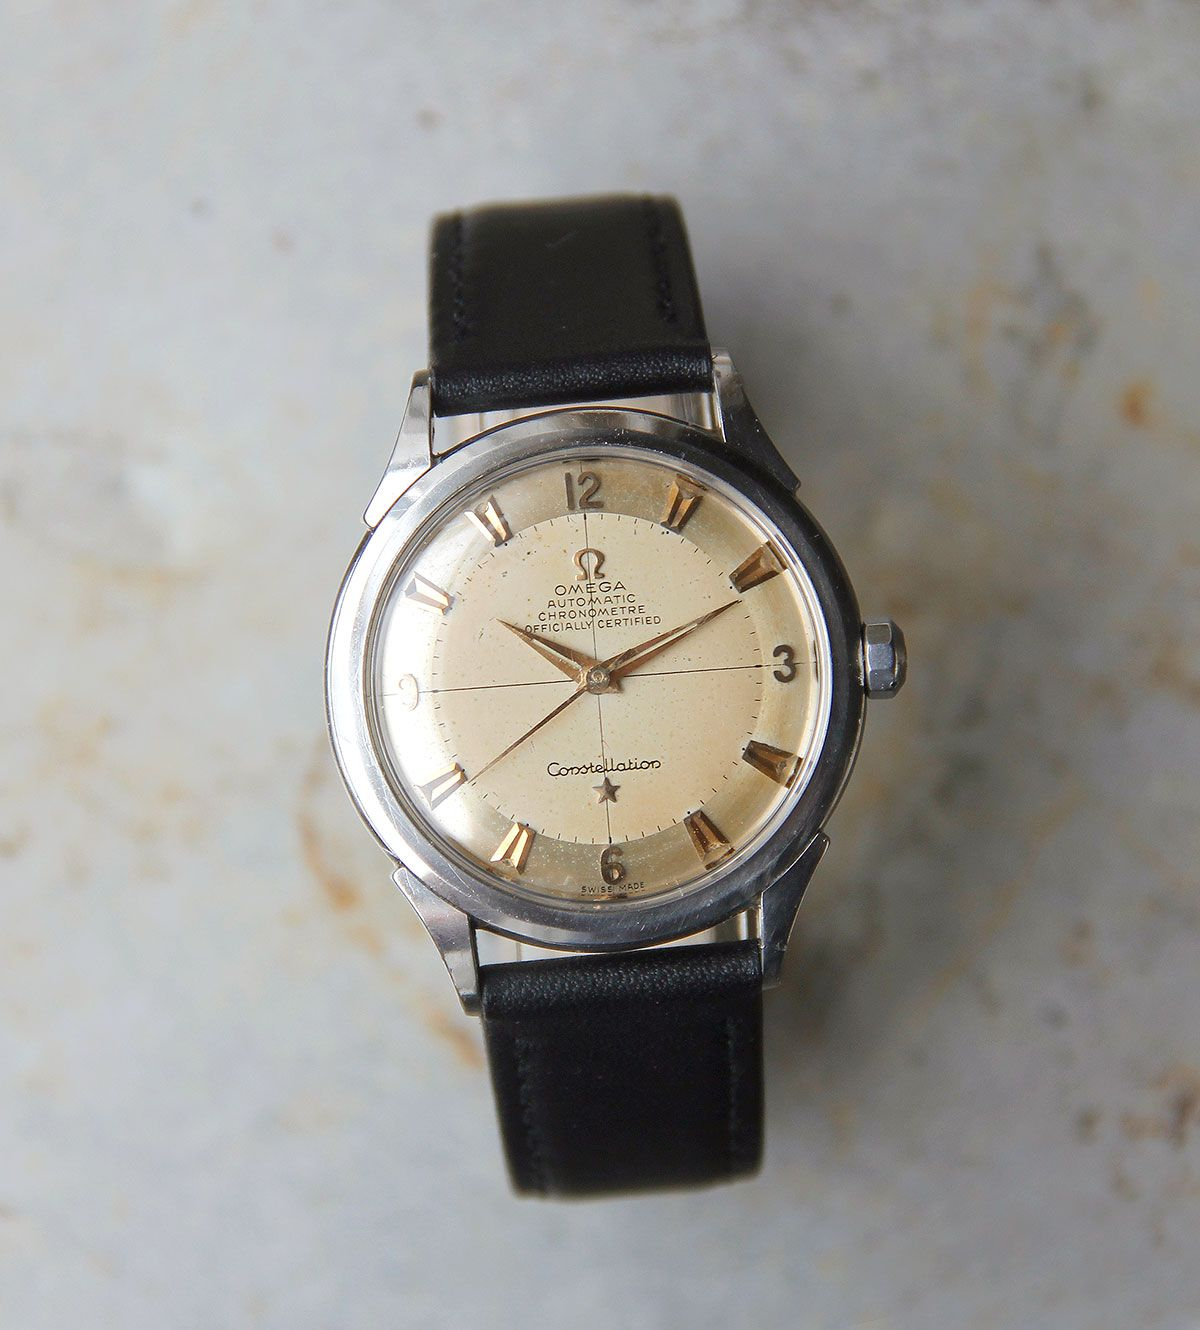 All-original 1954 Omega Constellation bumper. Its original features include: Original two tone dial; ref. 2782 automatic movement yielding 19,800 bph (5.5 beats per second), 17-jewel caliber 354; Incabloc shock protection; sweep seconds; 35mm case featuring engraved Constellation logo on back; signed crown. We have replaced the strap with a new one, and the movement has been fully serviced and regulated. A little history: Constellations of the 1950s through to the … Read More →